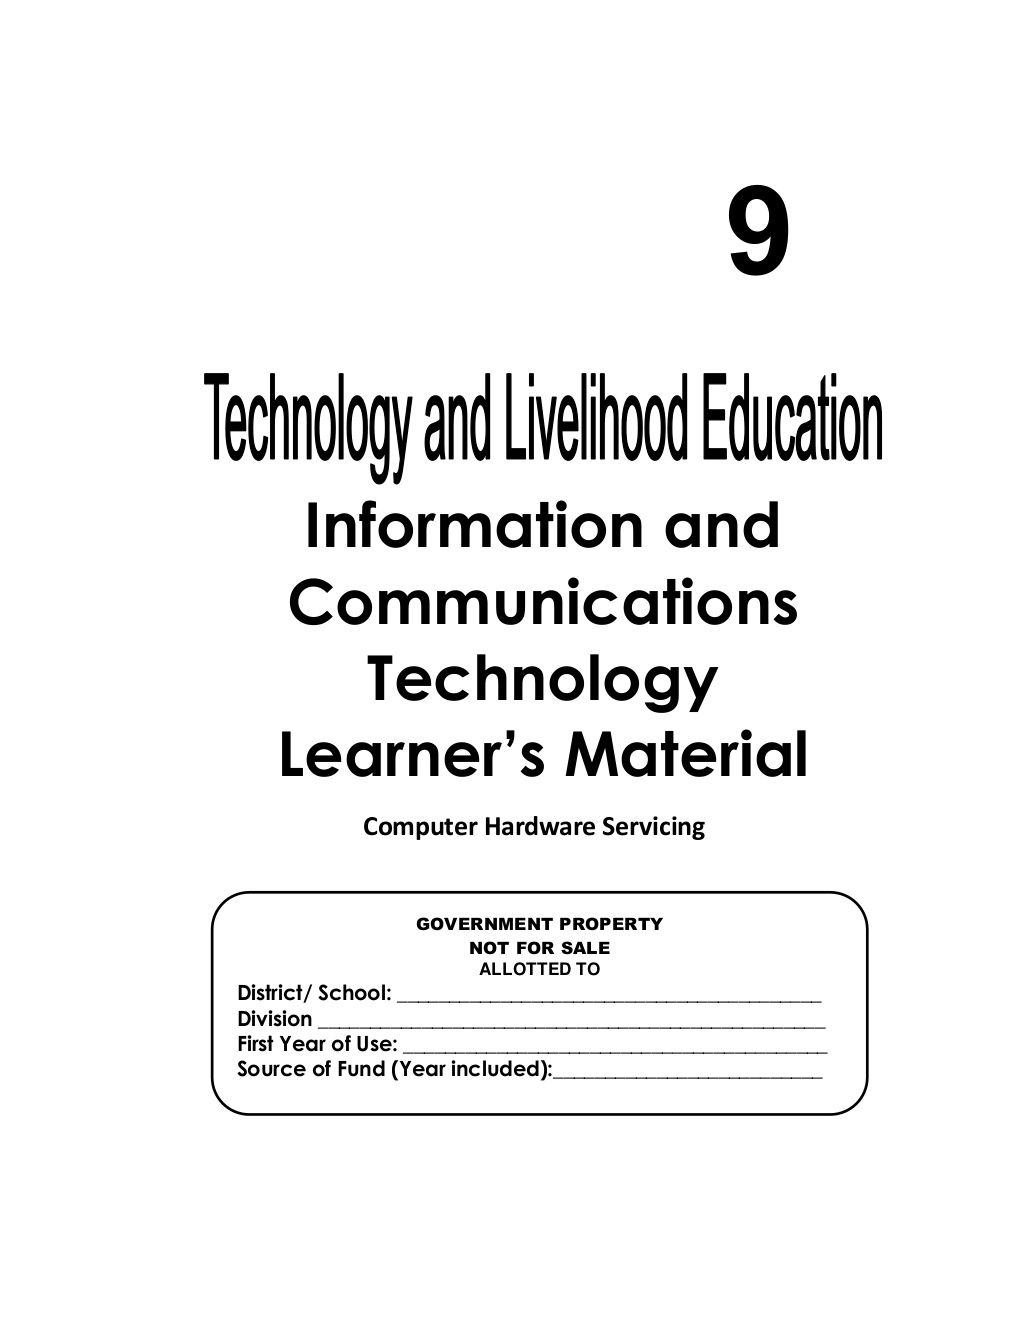 Pdf Print K 12 Module In Tle Ict Grade 9 All Gradings Information And Communications Technology Education Information Teaching Computers